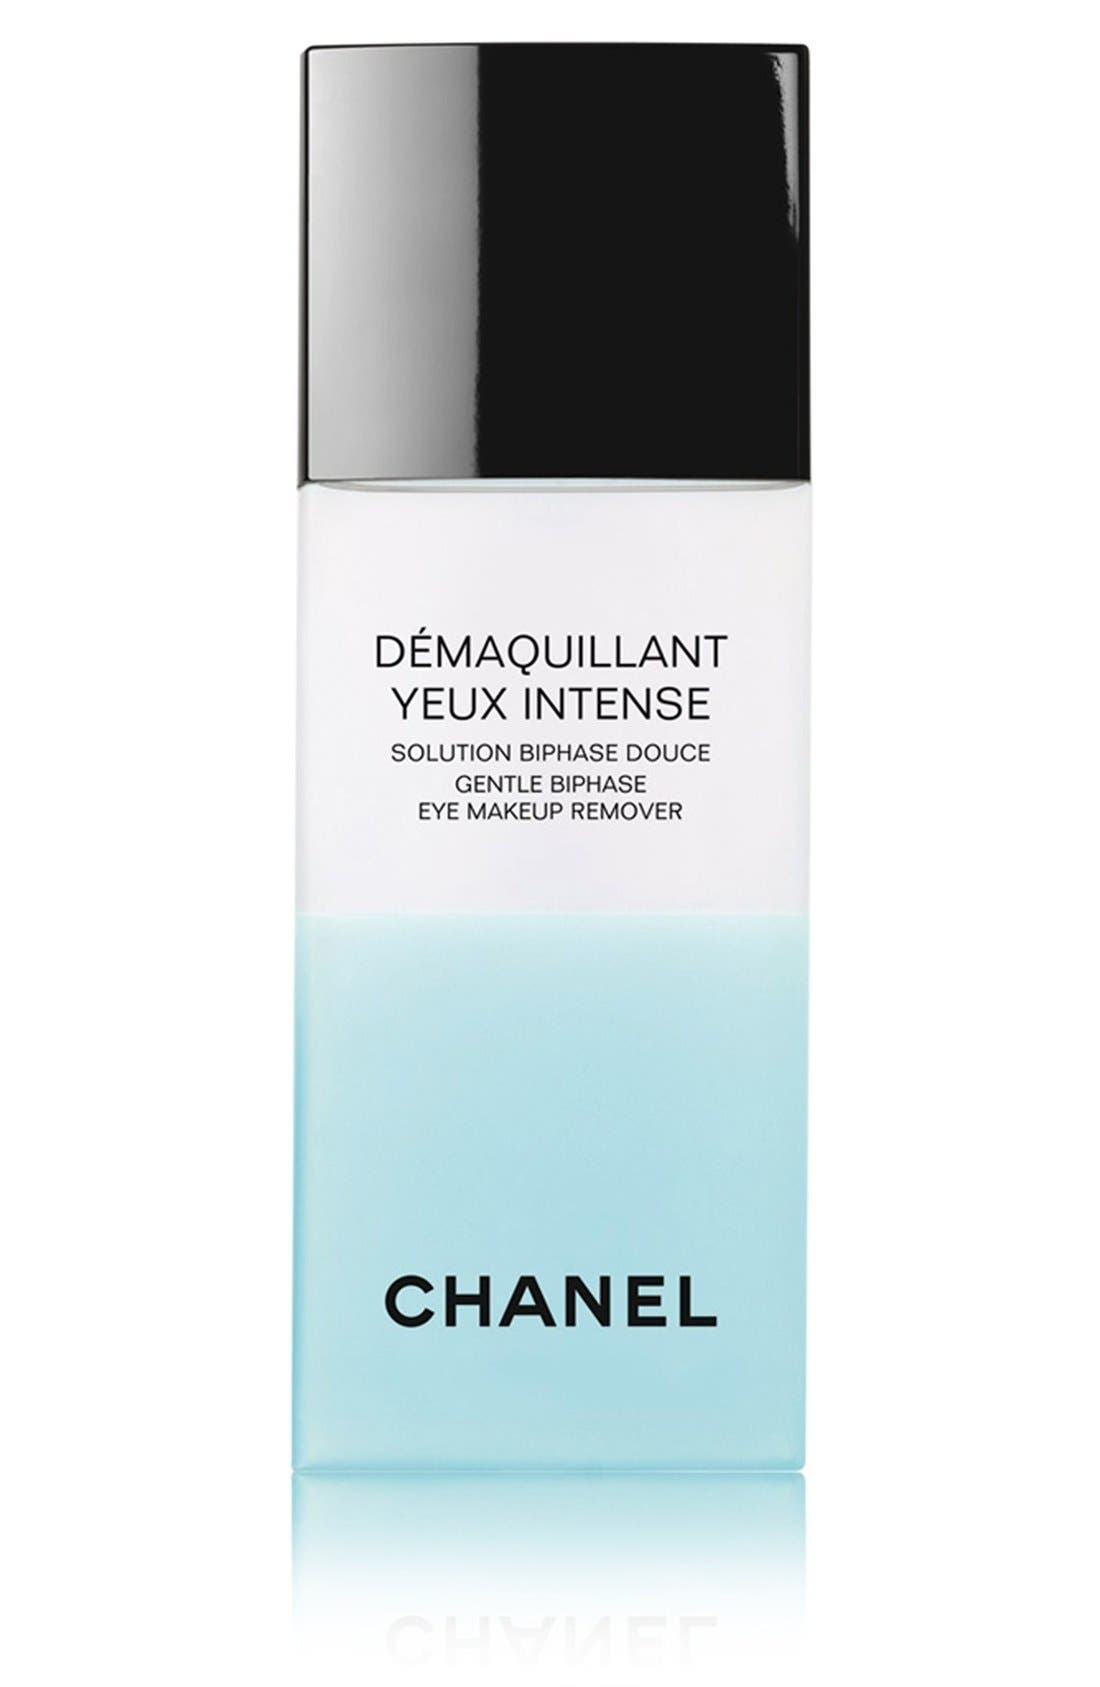 CHANEL,                             DÉMAQUILLANT YEUX INTENSE<br />Gentle Bi-Phase Eye Makeup Remover,                             Main thumbnail 1, color,                             NO COLOR